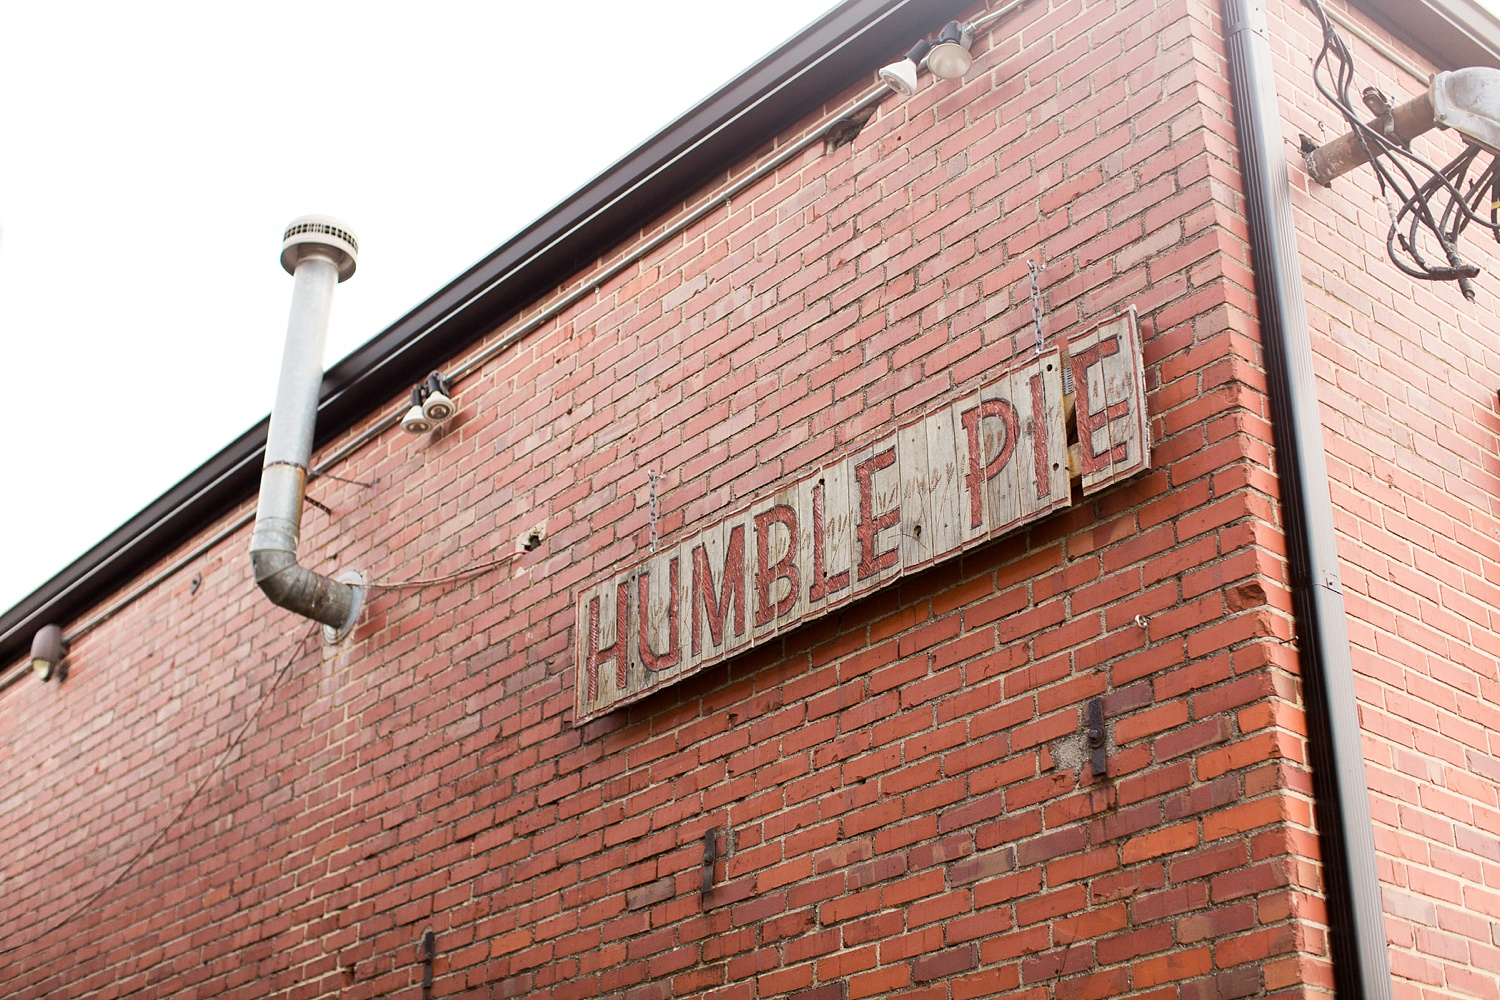 raleigh, nc restaurant Humble Pie